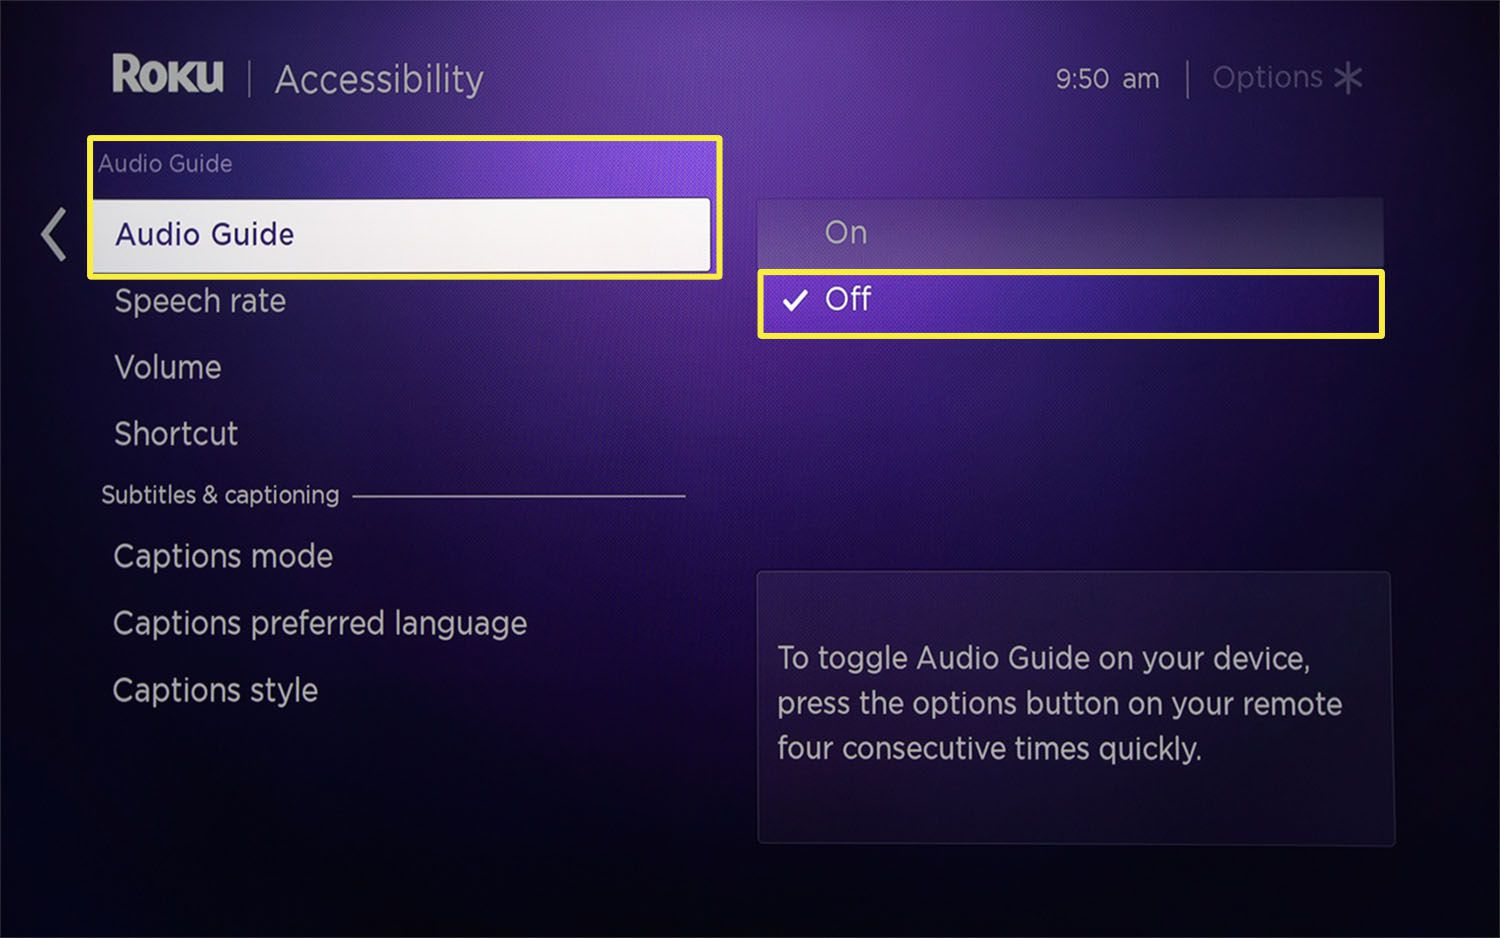 The Audio Guide feature set to Off from Roku Accessibility settings.